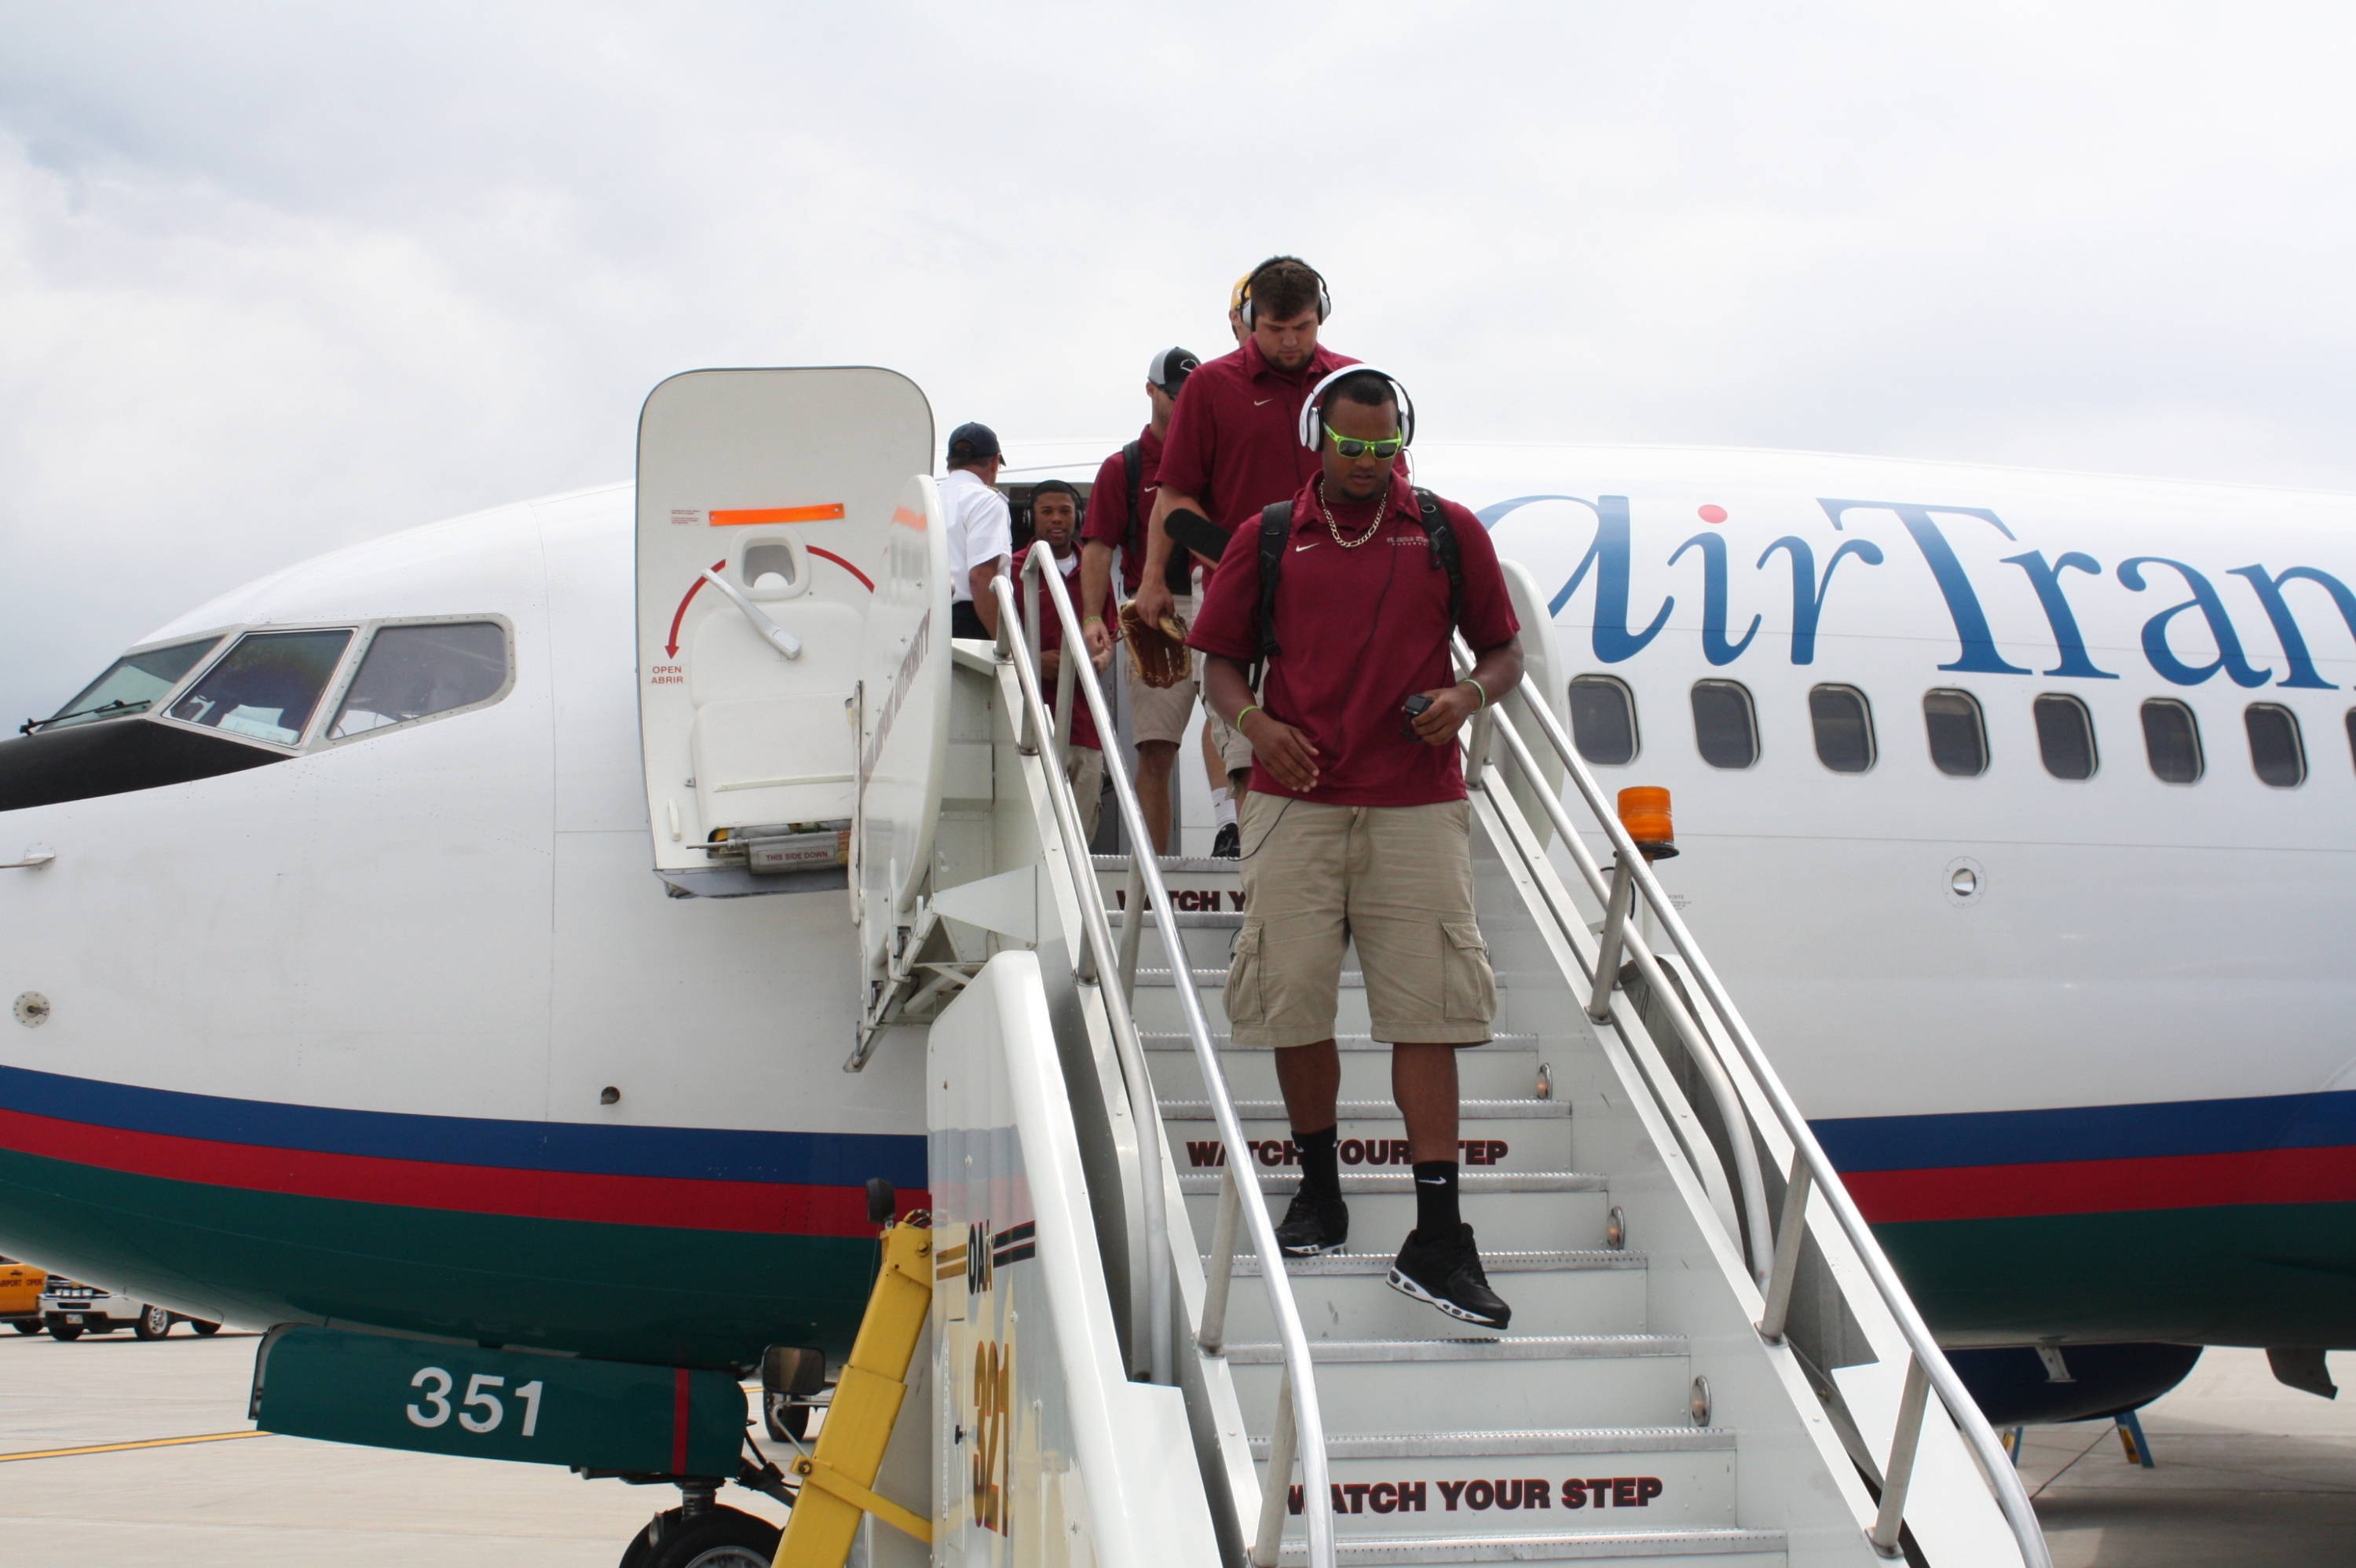 The Seminoles arrive in Omaha!  Hunter Scantling and Brian Busch are the first players off the plane Wednesday afternoon.